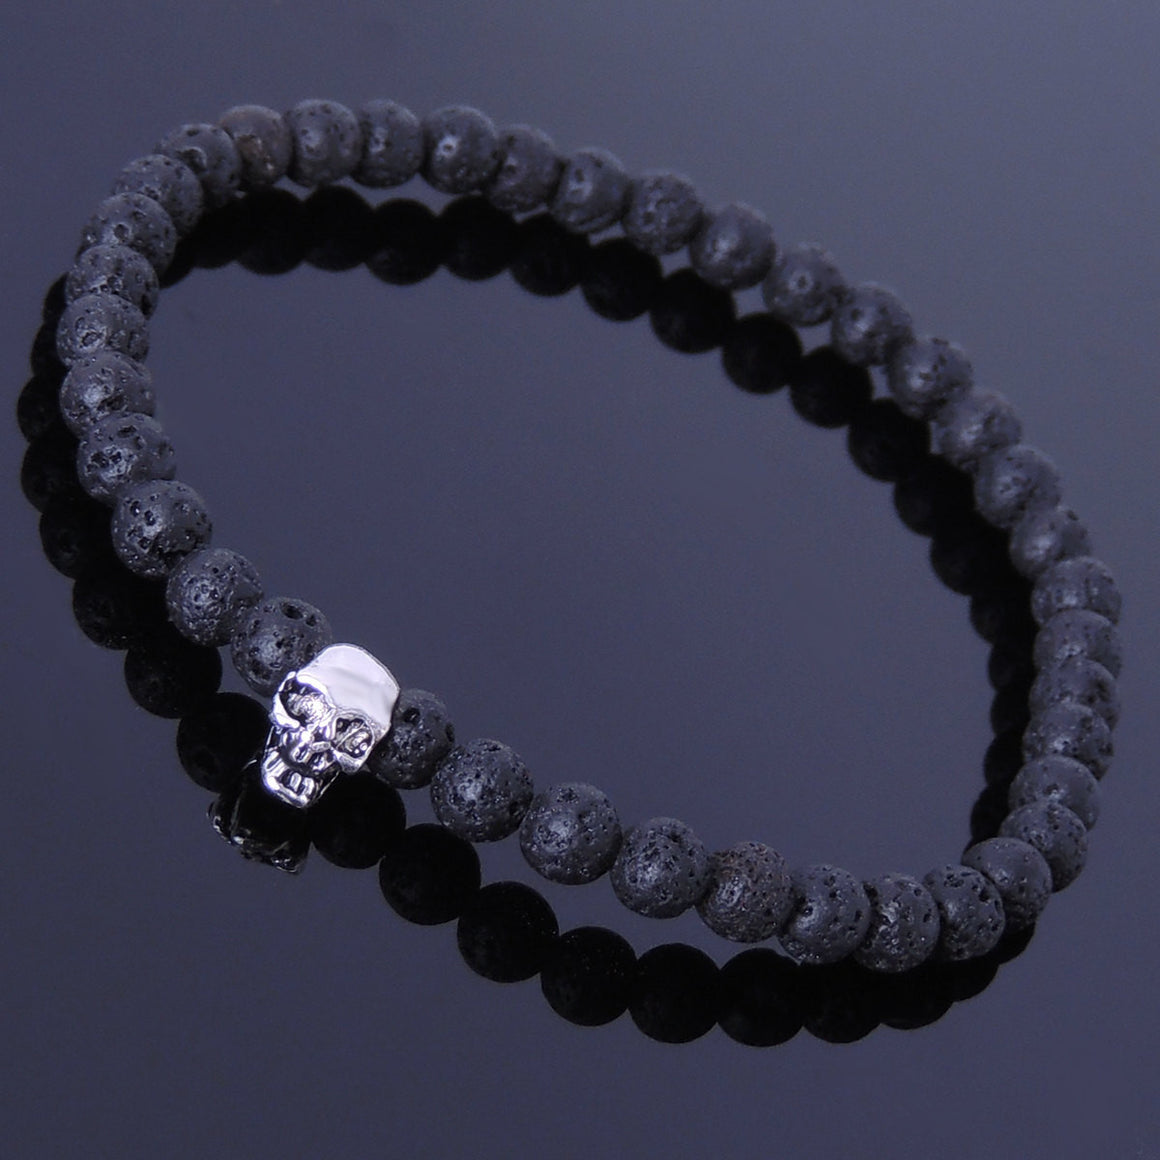 4mm Lava Rock Healing Stone Bracelet with S925 Sterling Silver Skull - Handmade by Gem & Silver BR288E